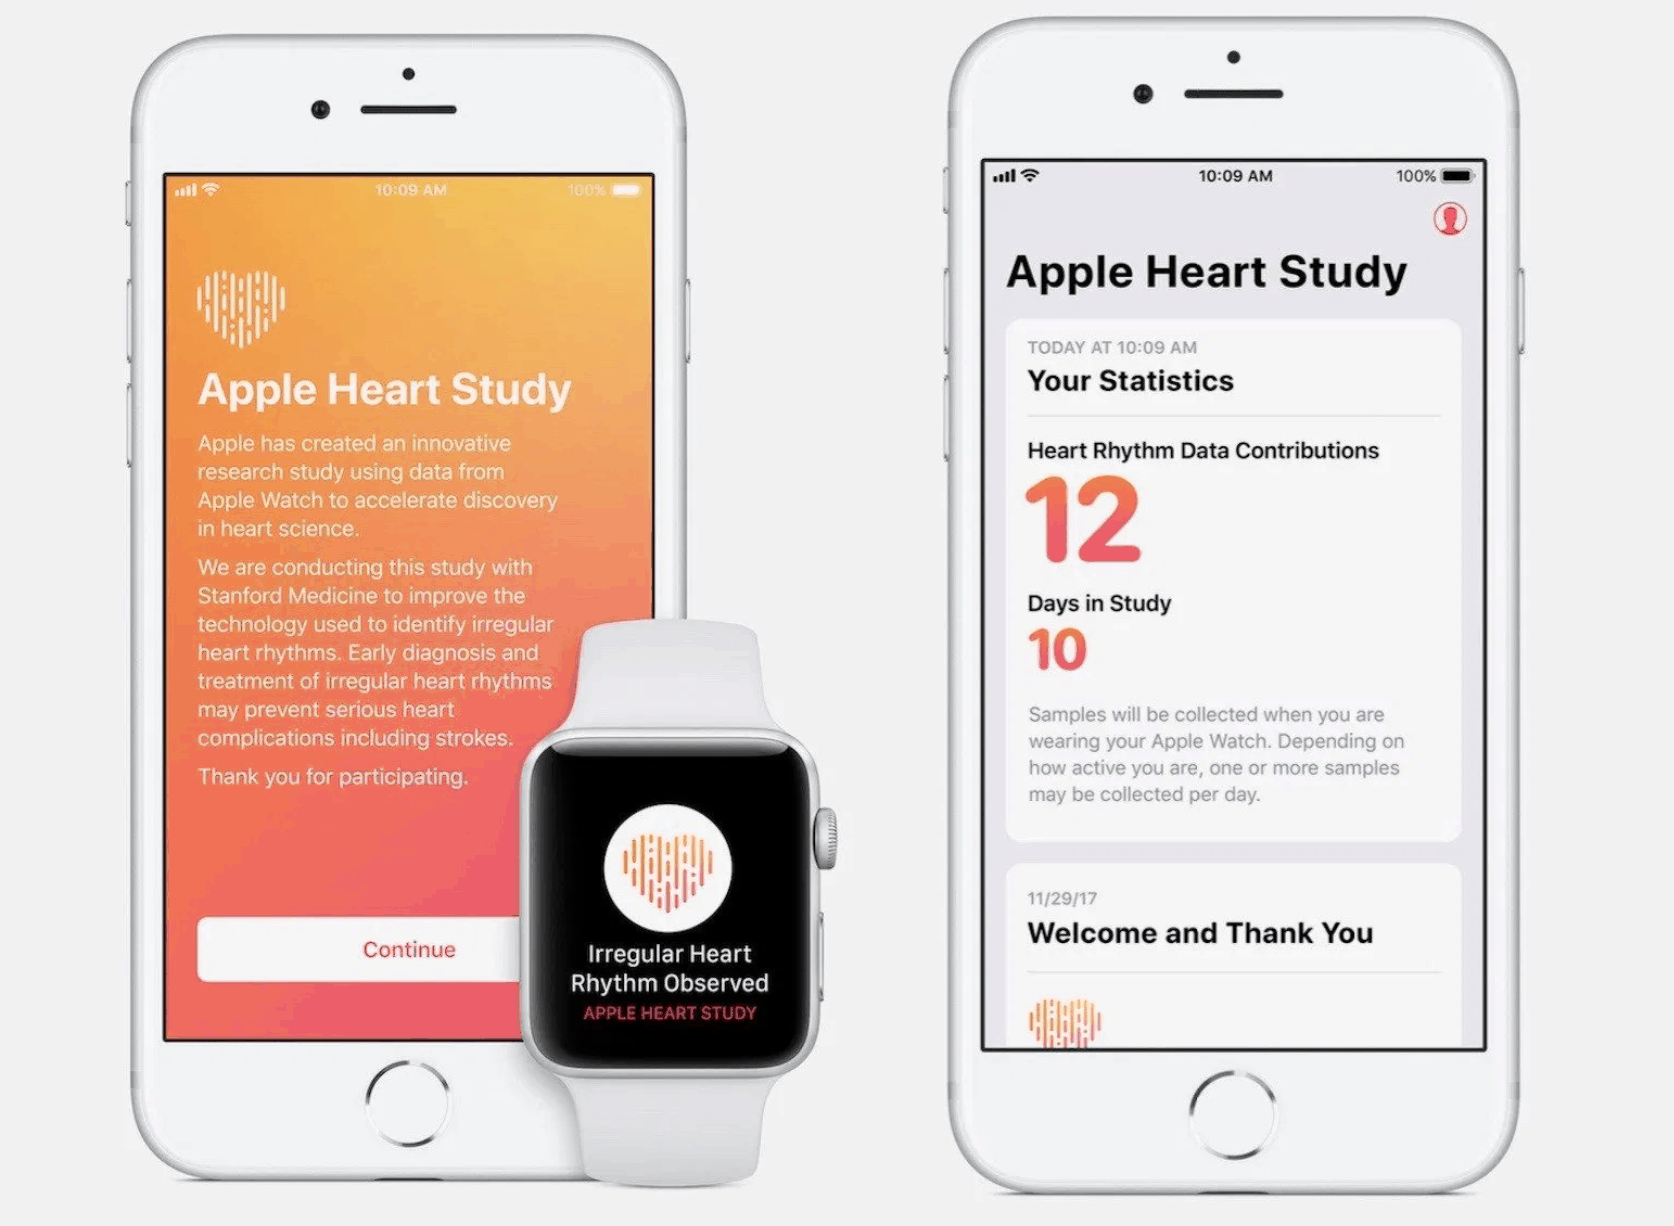 Apple Heart Study Results Published in Stanford Medicine Journal